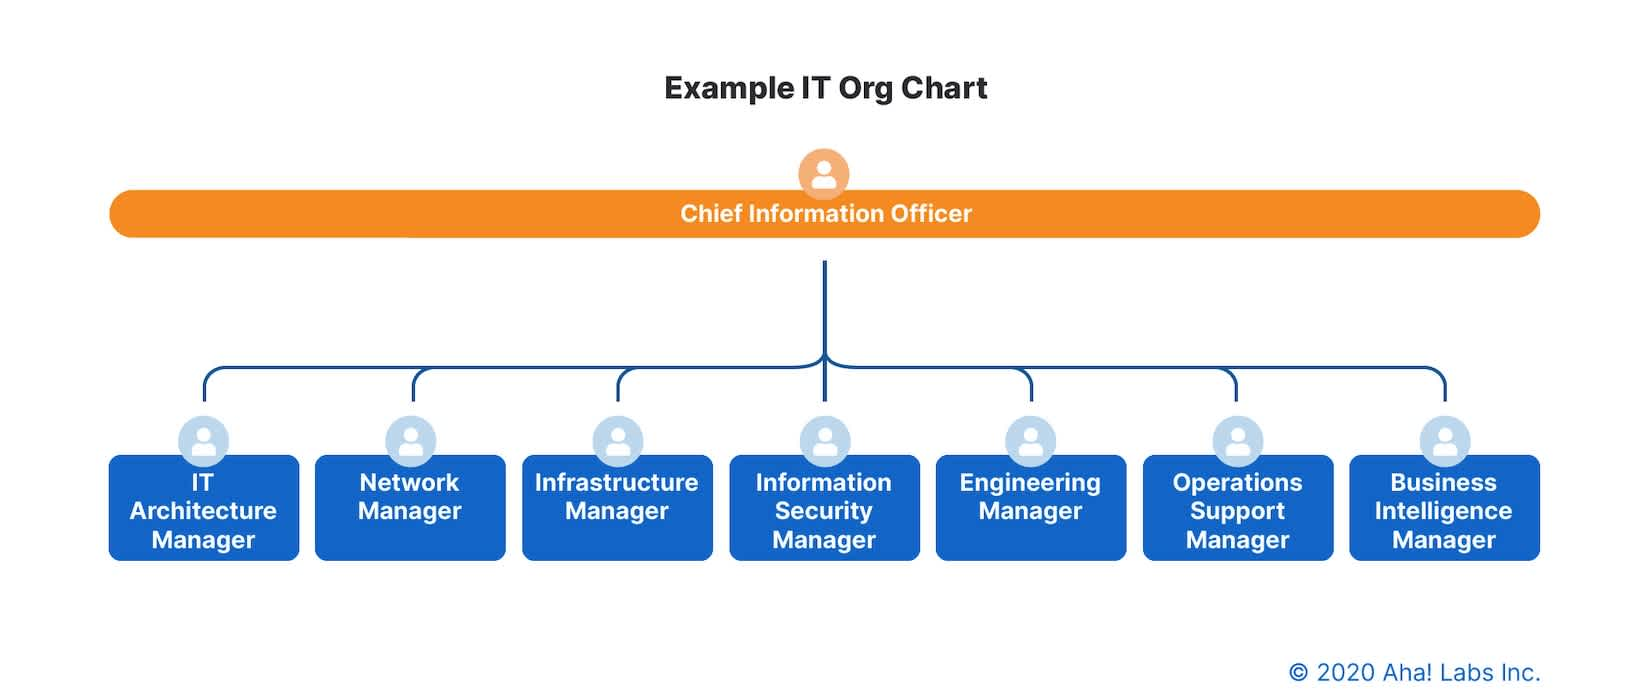 An example of an IT org chart with a Chief Information Officer at the top.